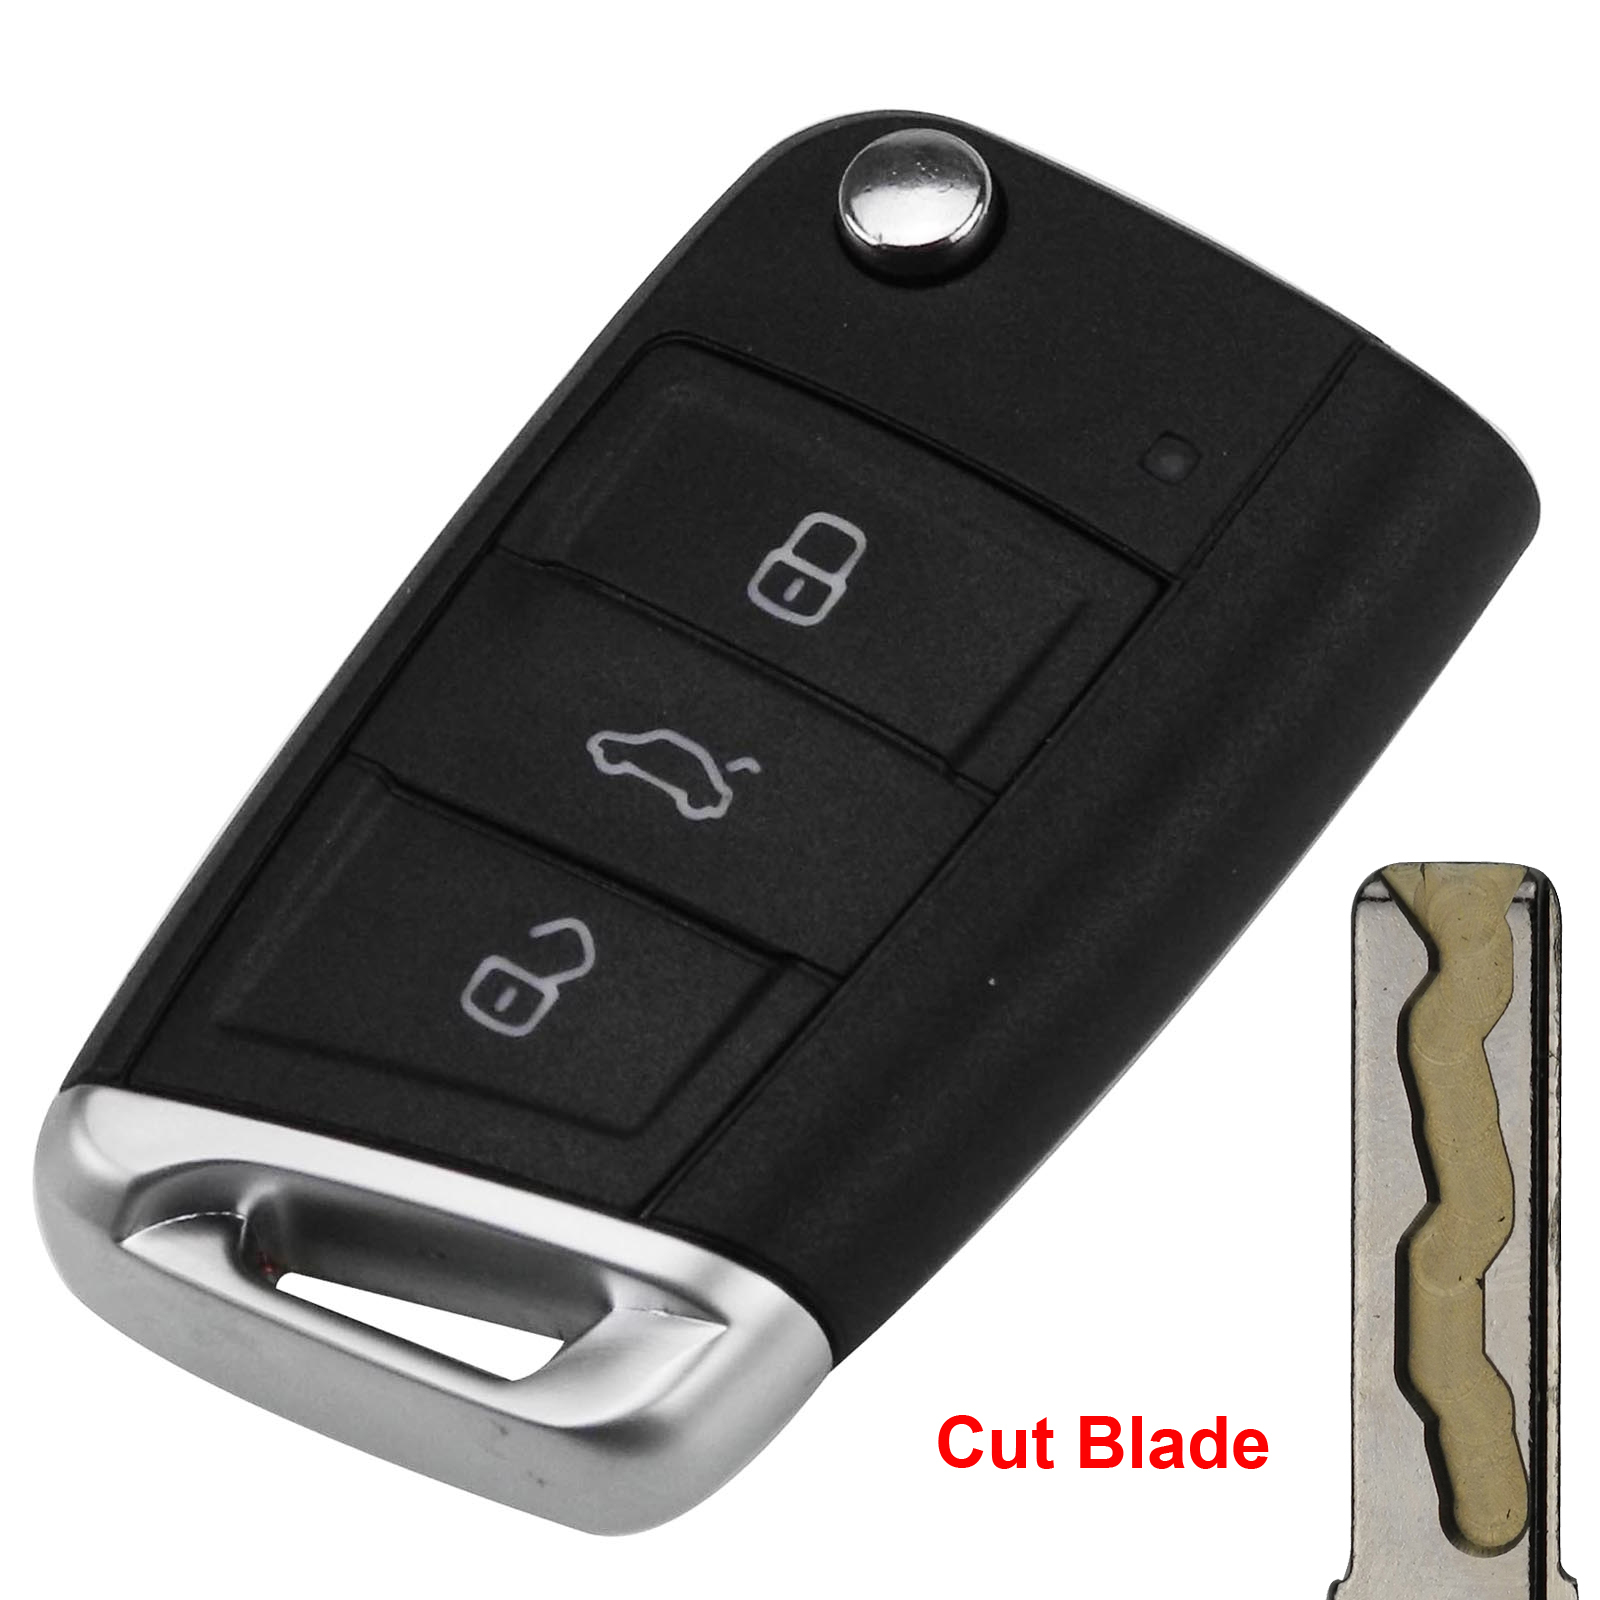 jingyuqin 3 Buttons Modified Cut Blade Folding Flip <font><b>Remote</b></font> <font><b>Key</b></font> Shell Case for VW Tiguan <font><b>Golf</b></font> <font><b>7</b></font> Jetta Passat Beetle Polo Bora image